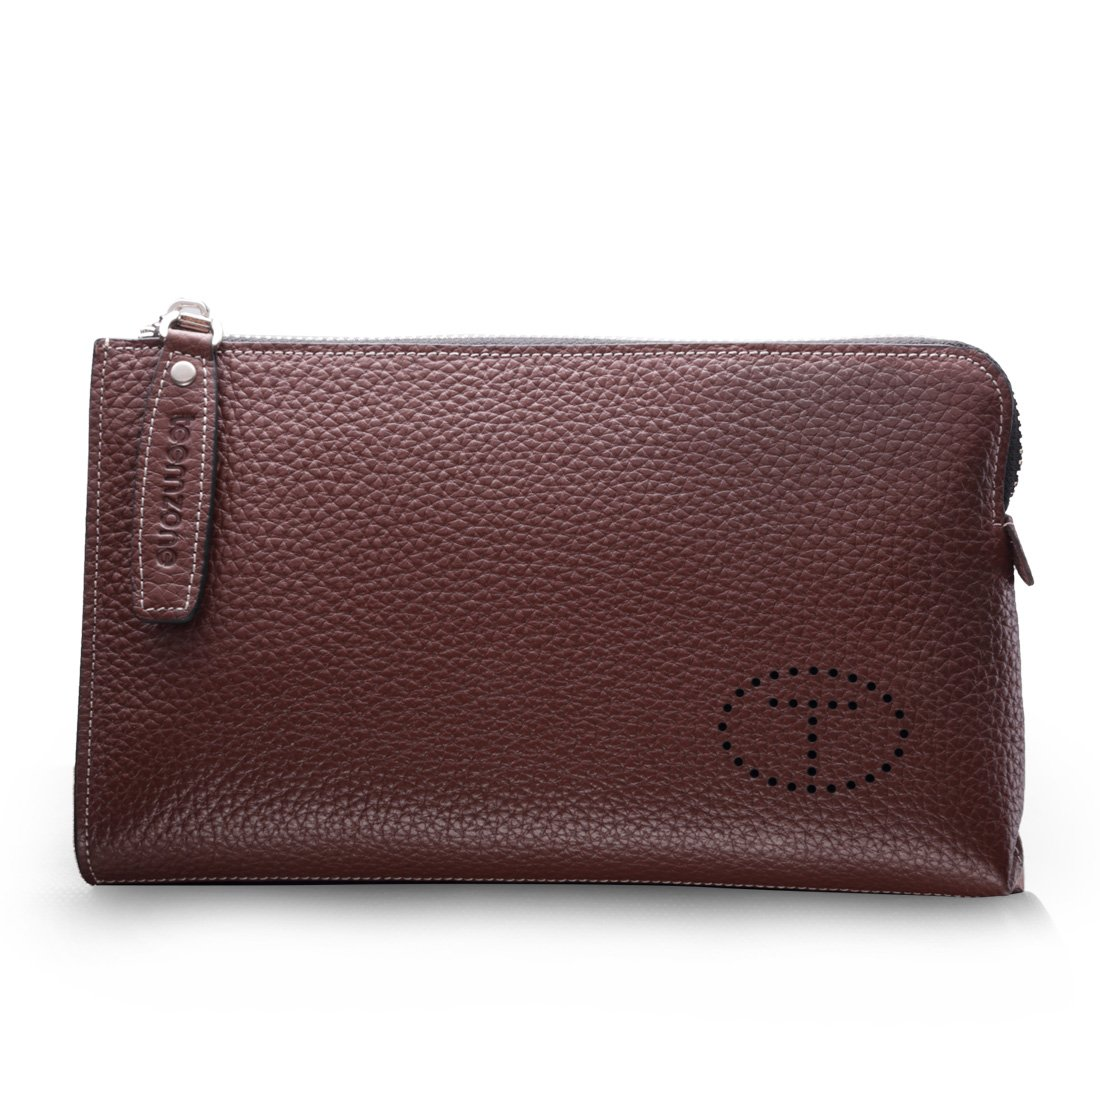 Teemzone Men's Top Genuine Leather Business Clutch Bag with Wristlet TEECL3316